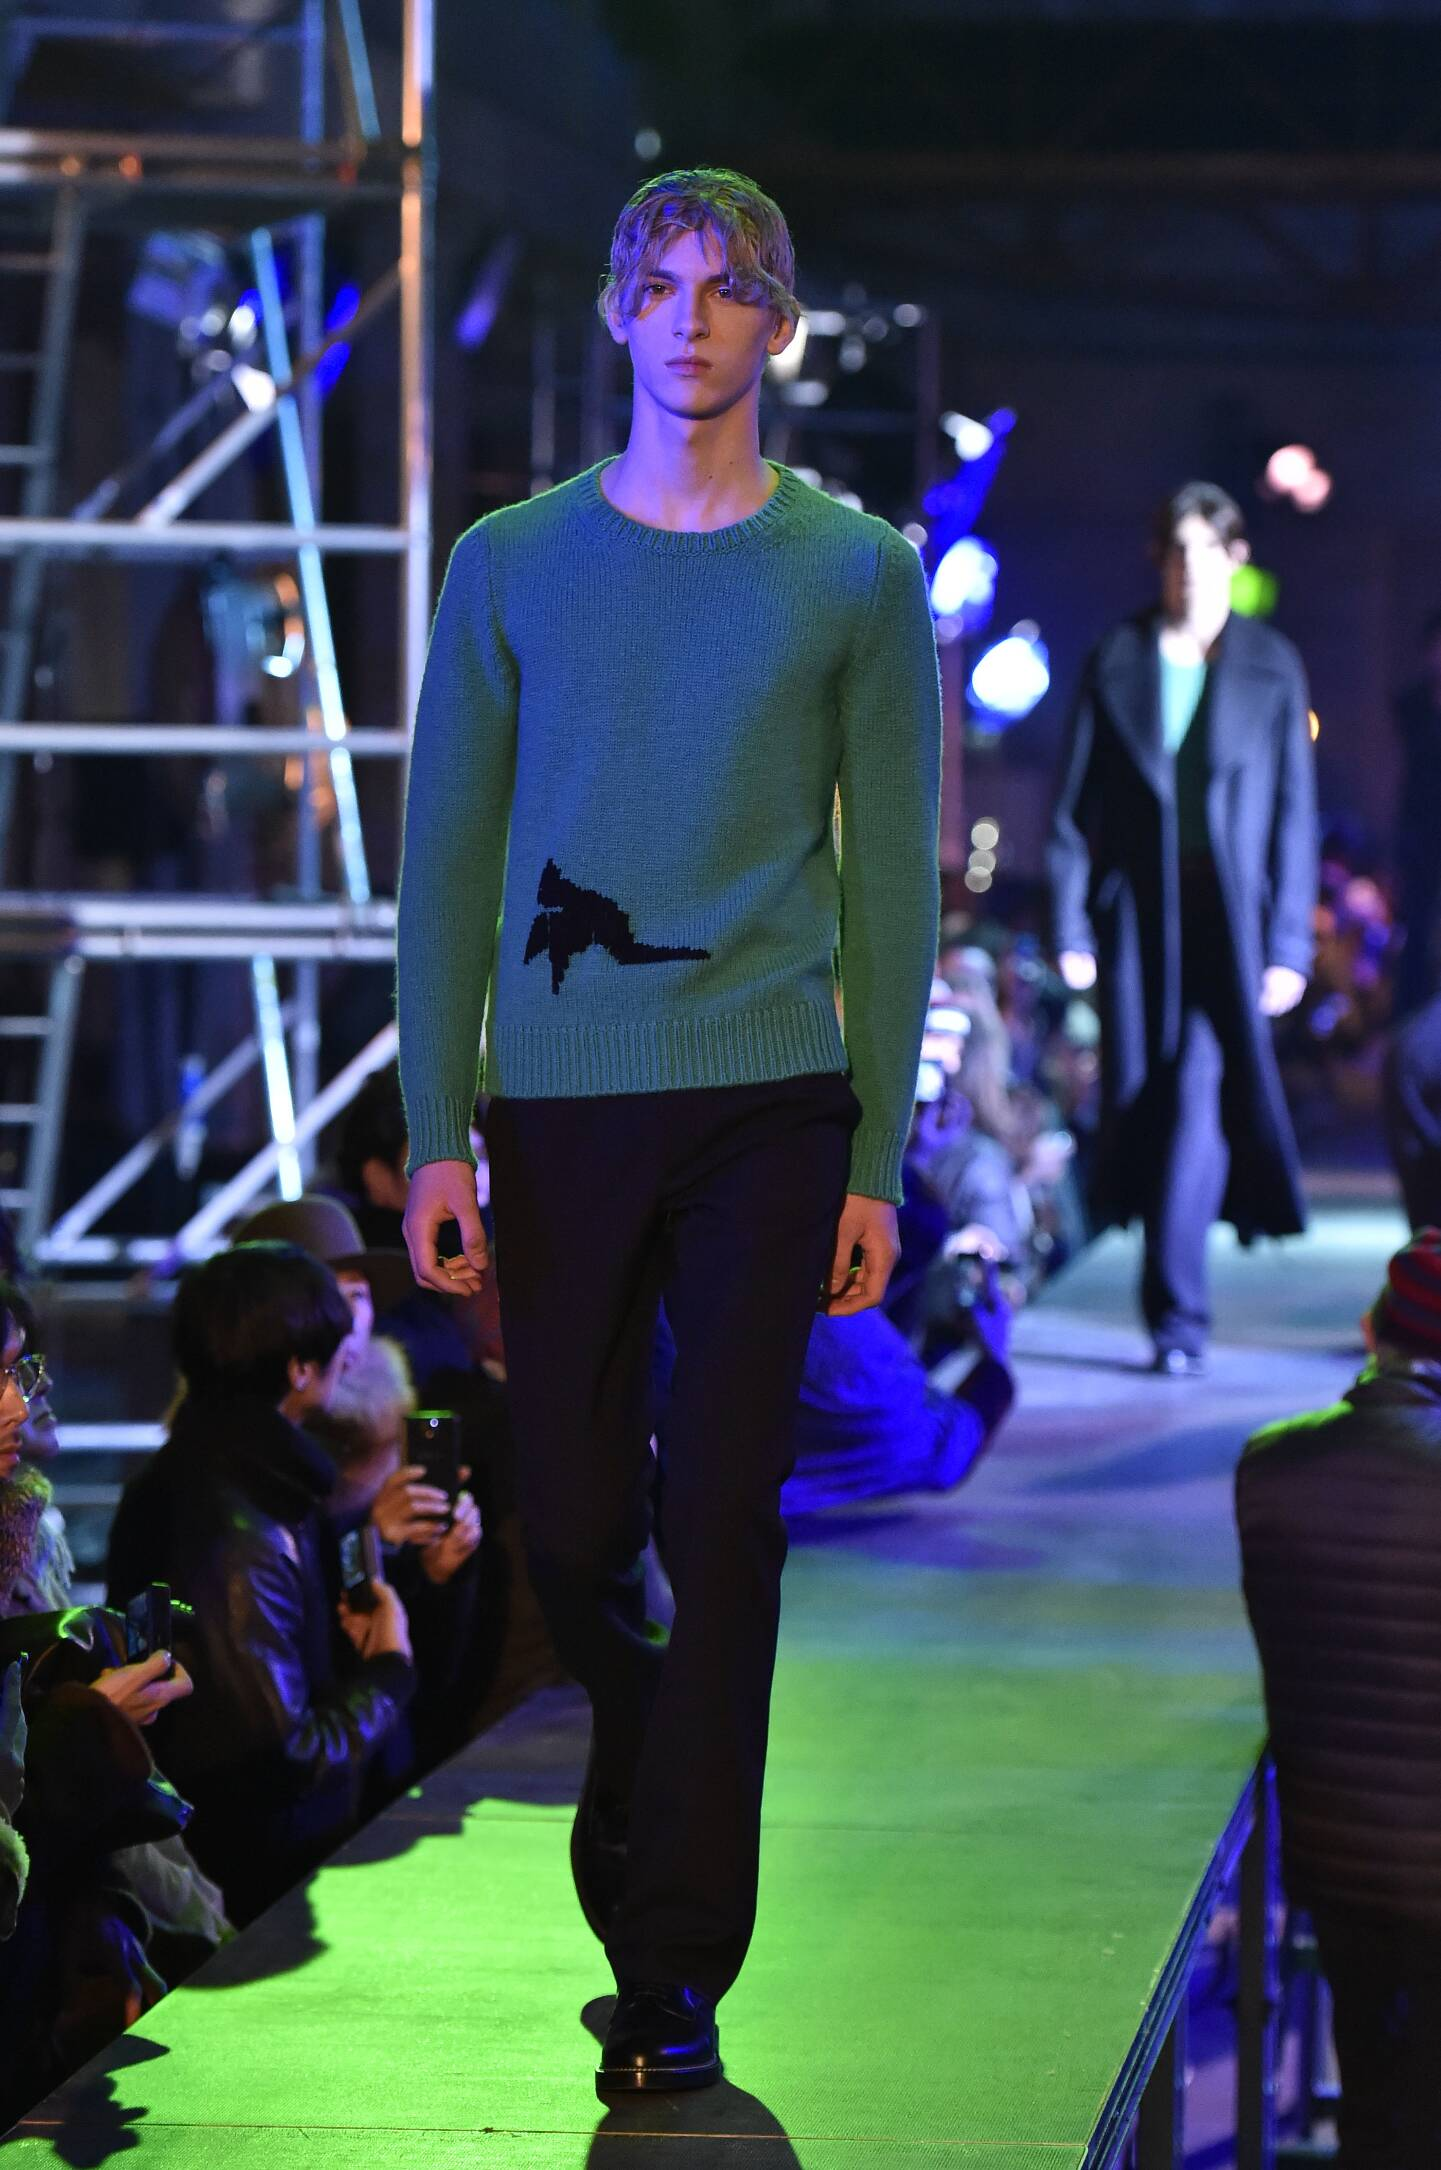 Raf Simons Fall Winter 2015 16 Men's Collection Paris Fashion Week Fashion Show